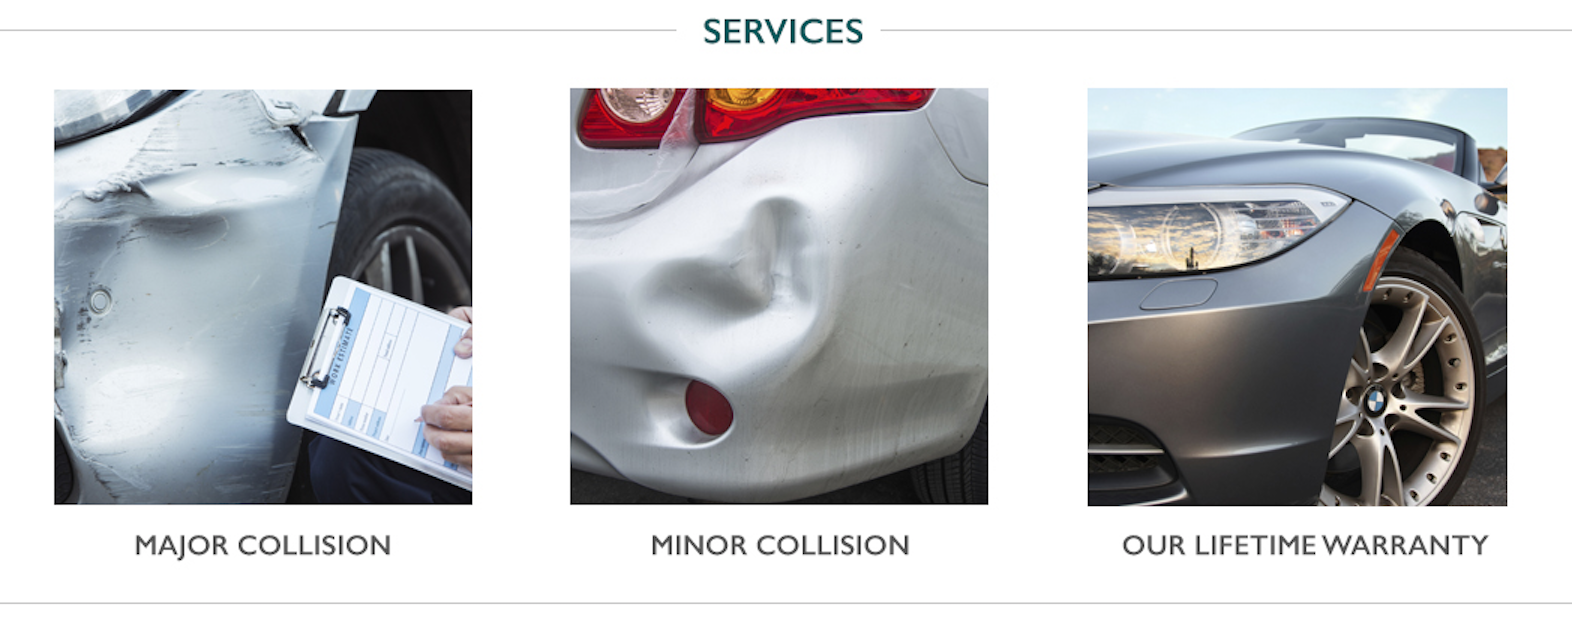 We offer a wide range of services, including major and minor collision repair, as well as our lifetime warranty. Book now  909.987.4609!  #car #cars #services #california